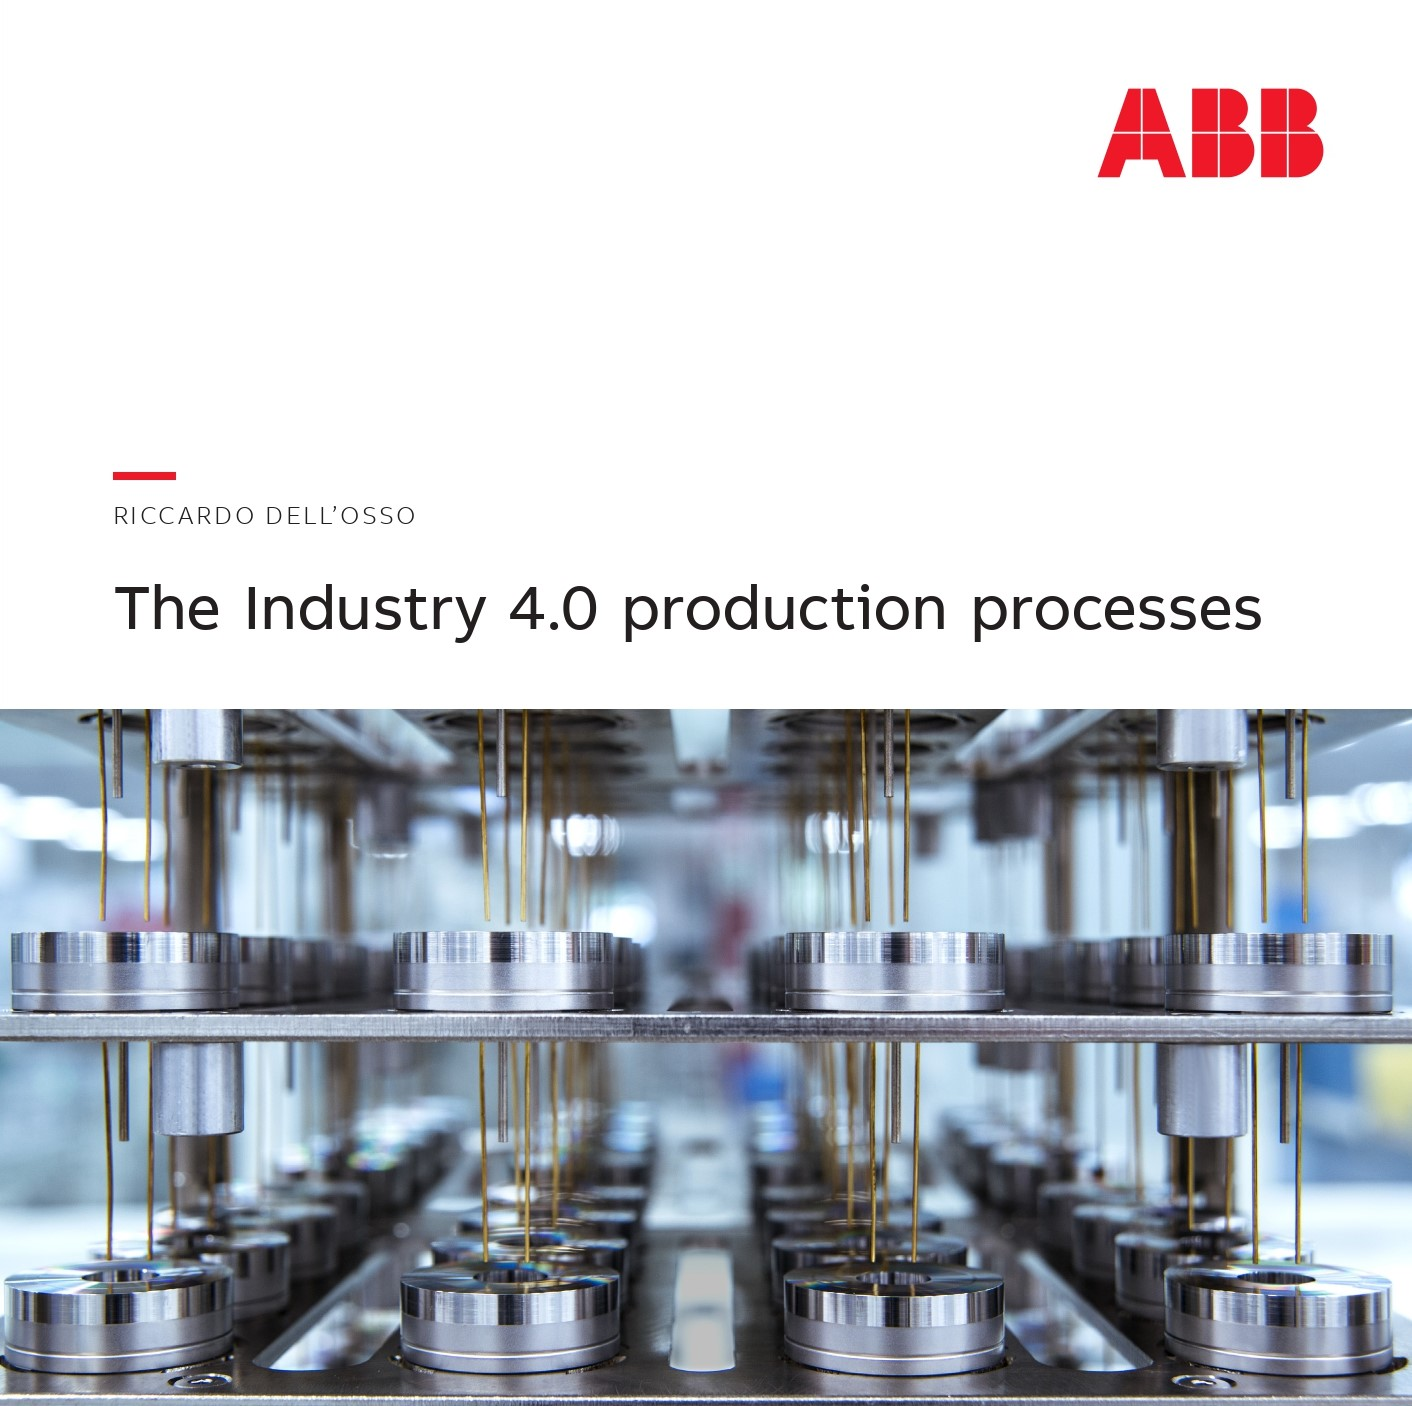 ABB_The Industry 4.0 production processes